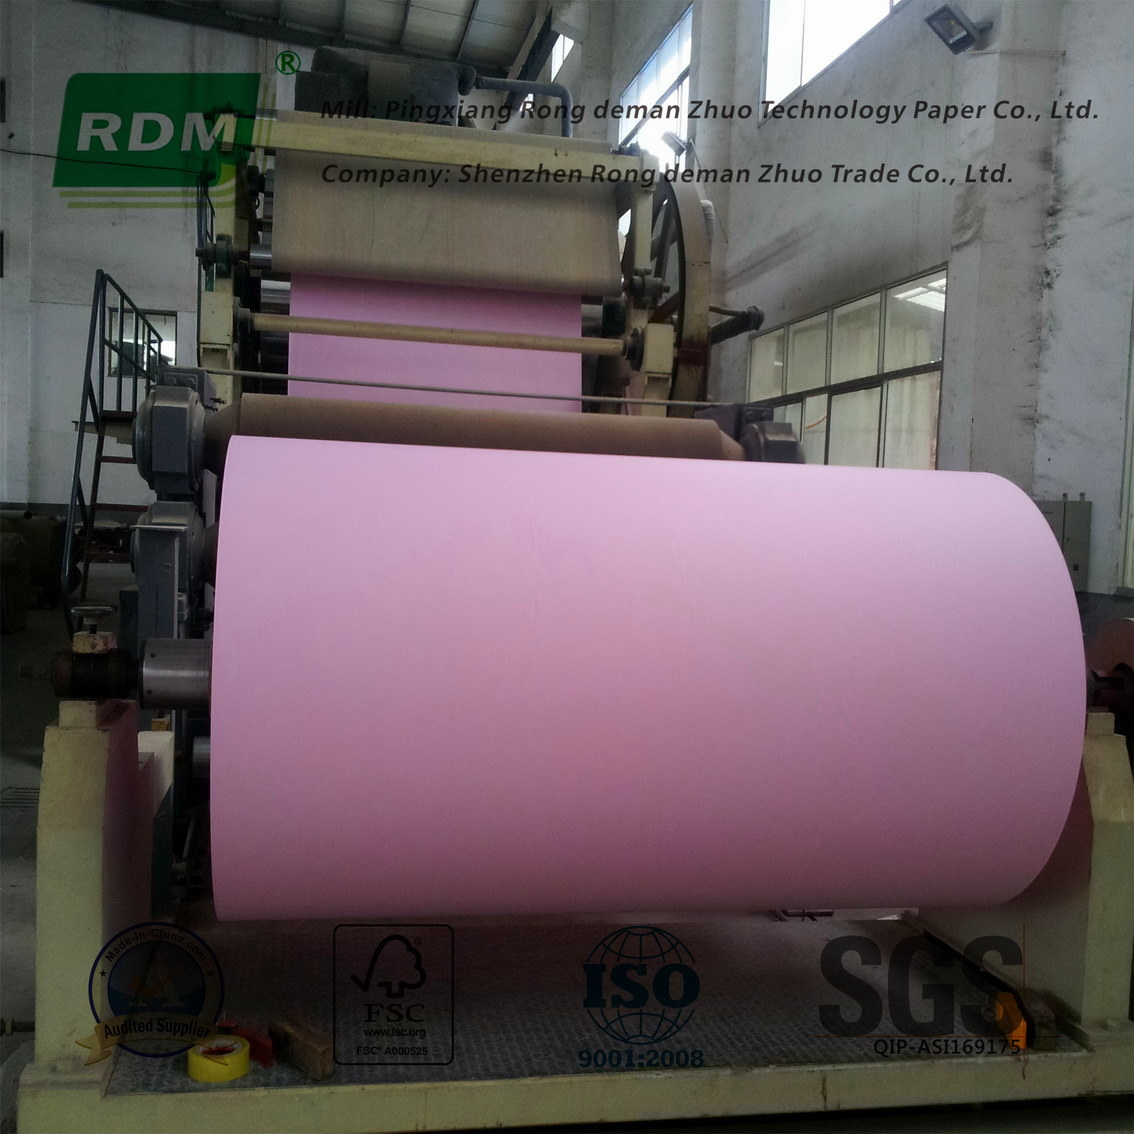 Carbonless Paper in Reels